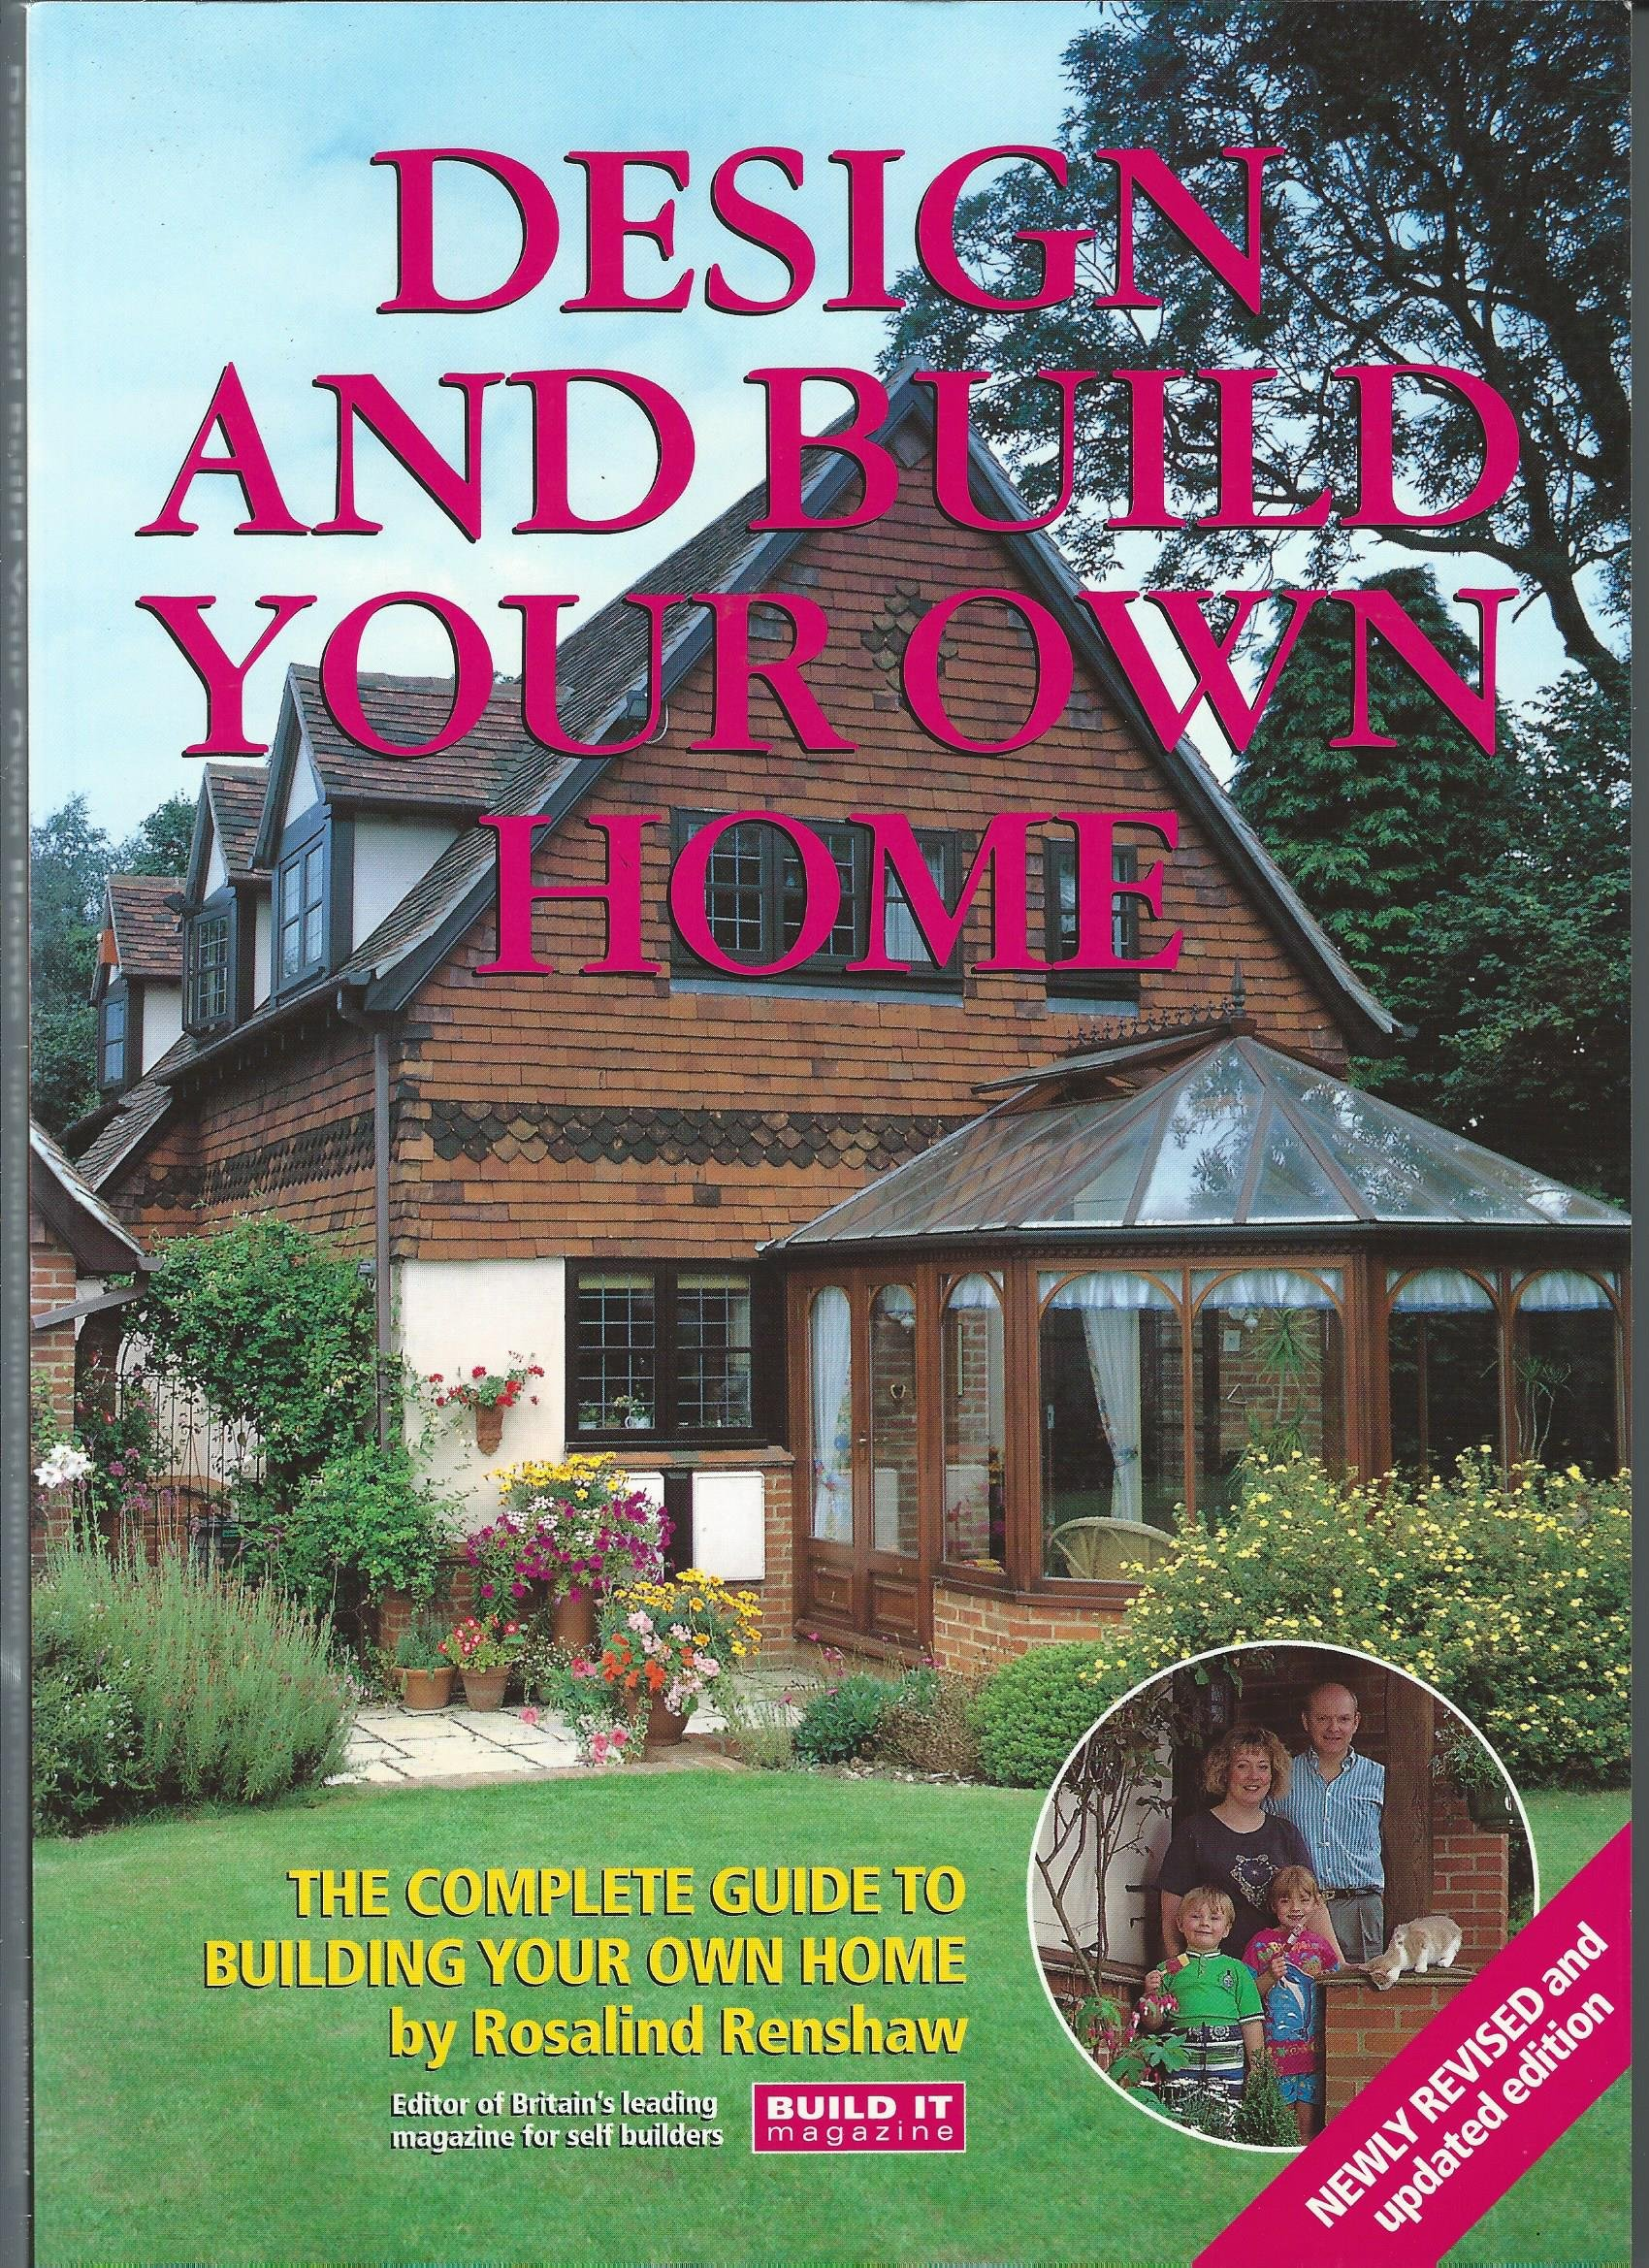 Design And Build Your Own Home The Complete Guide To Building Your Own Home 9780952658115 Amazon Com Books